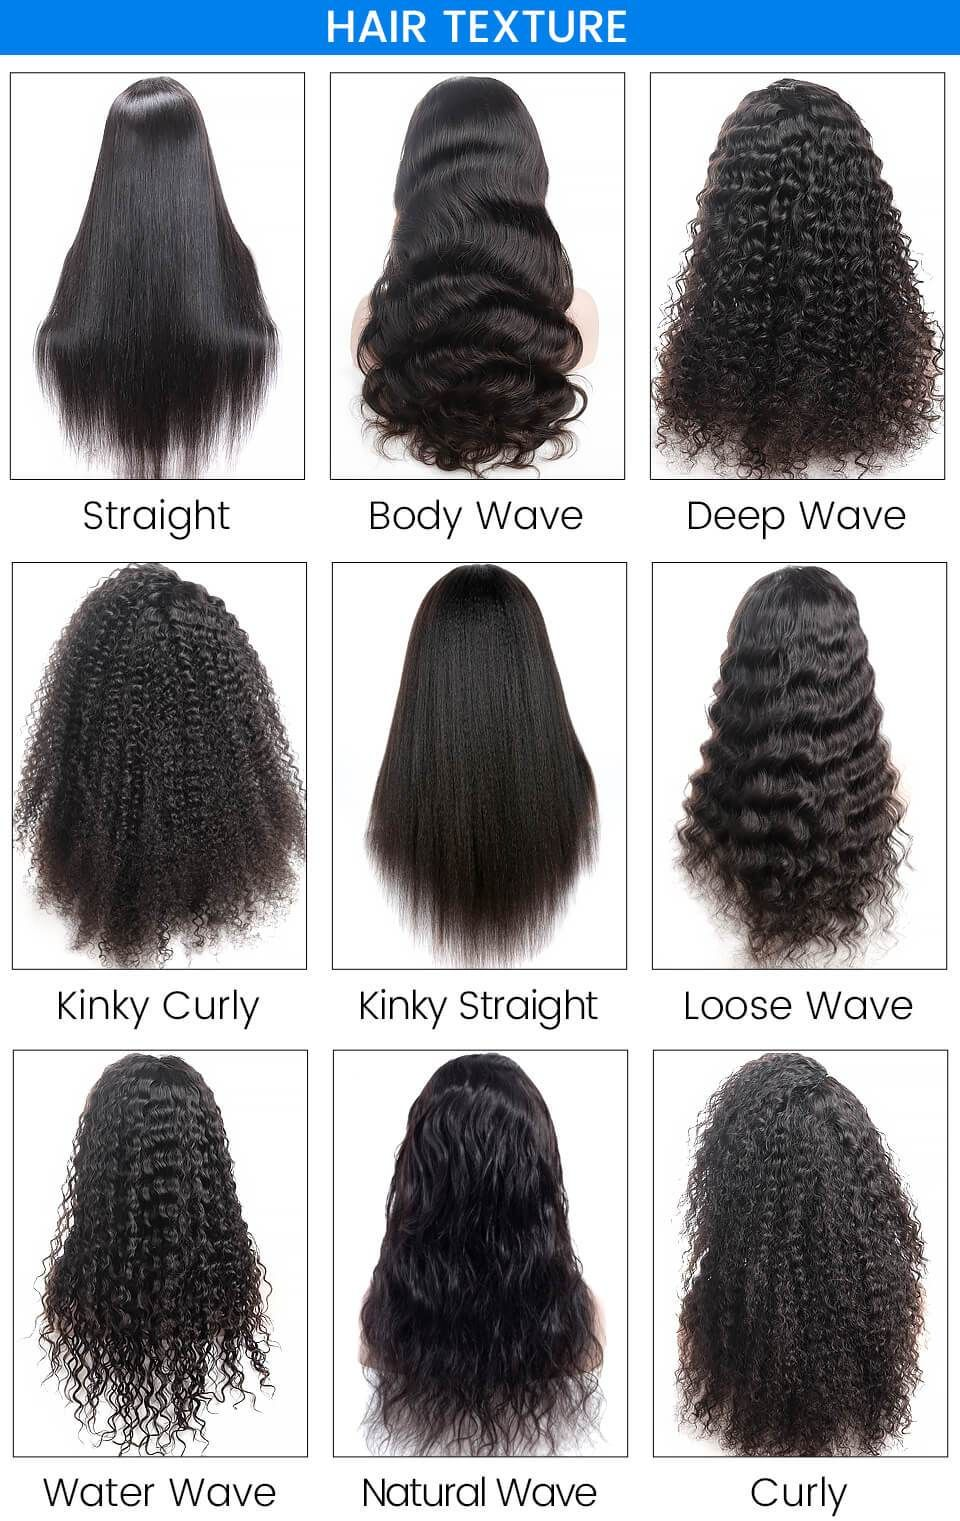 14 Inch Curly Hair Chart : curly, chart, Human, Straight(12-16, Enjoy, Black, Friday, Discount, Today, Curly, Styles, Naturally,, Styles,